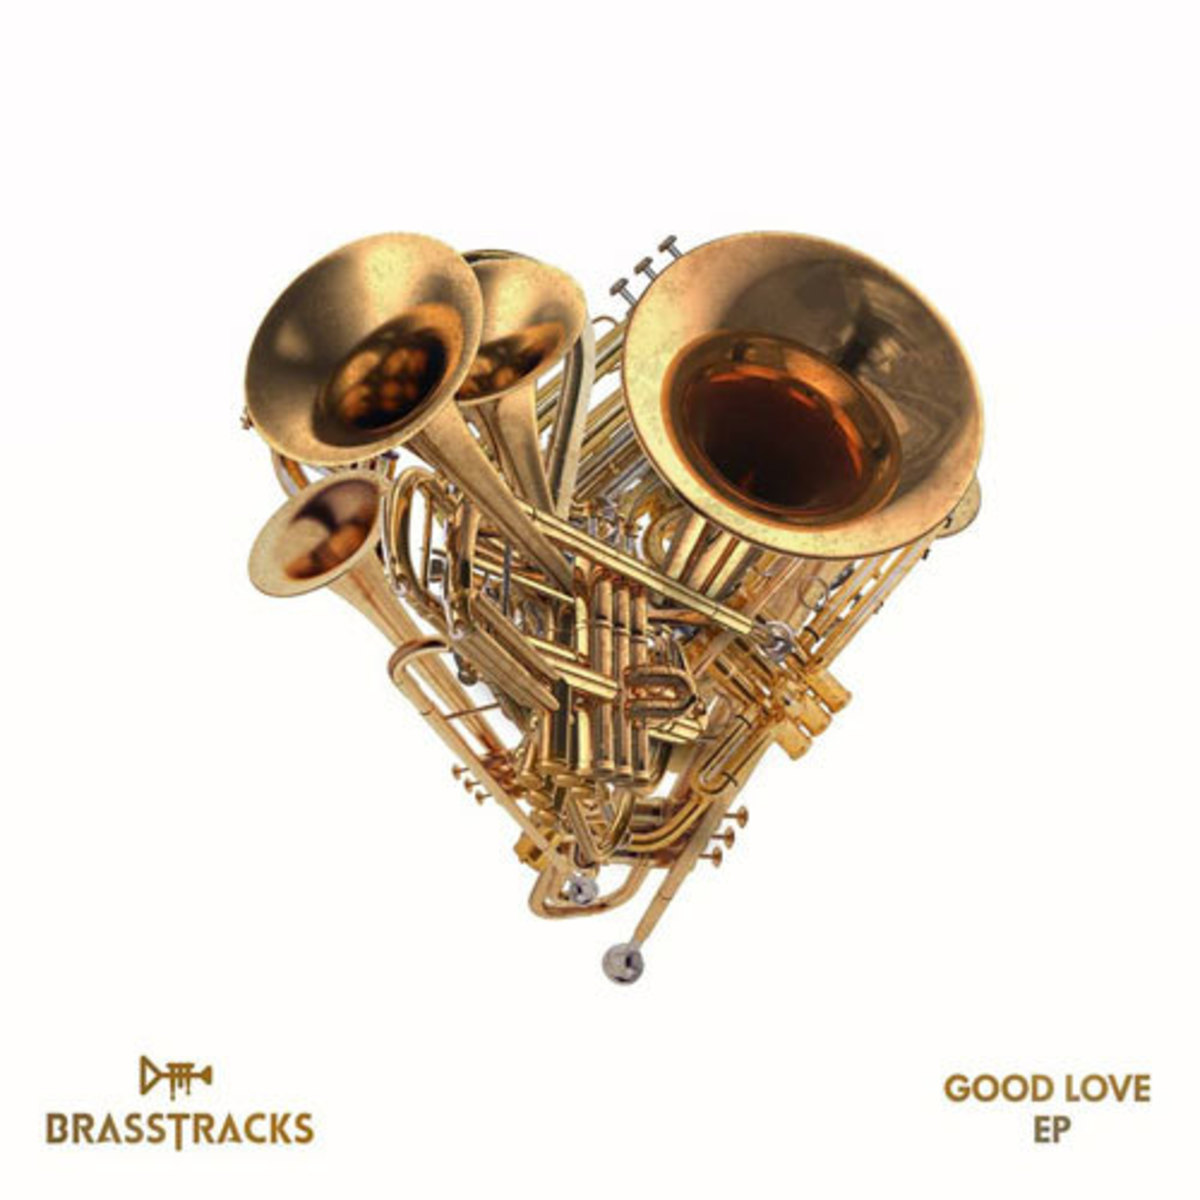 brasstracks-good-love-ep.jpg